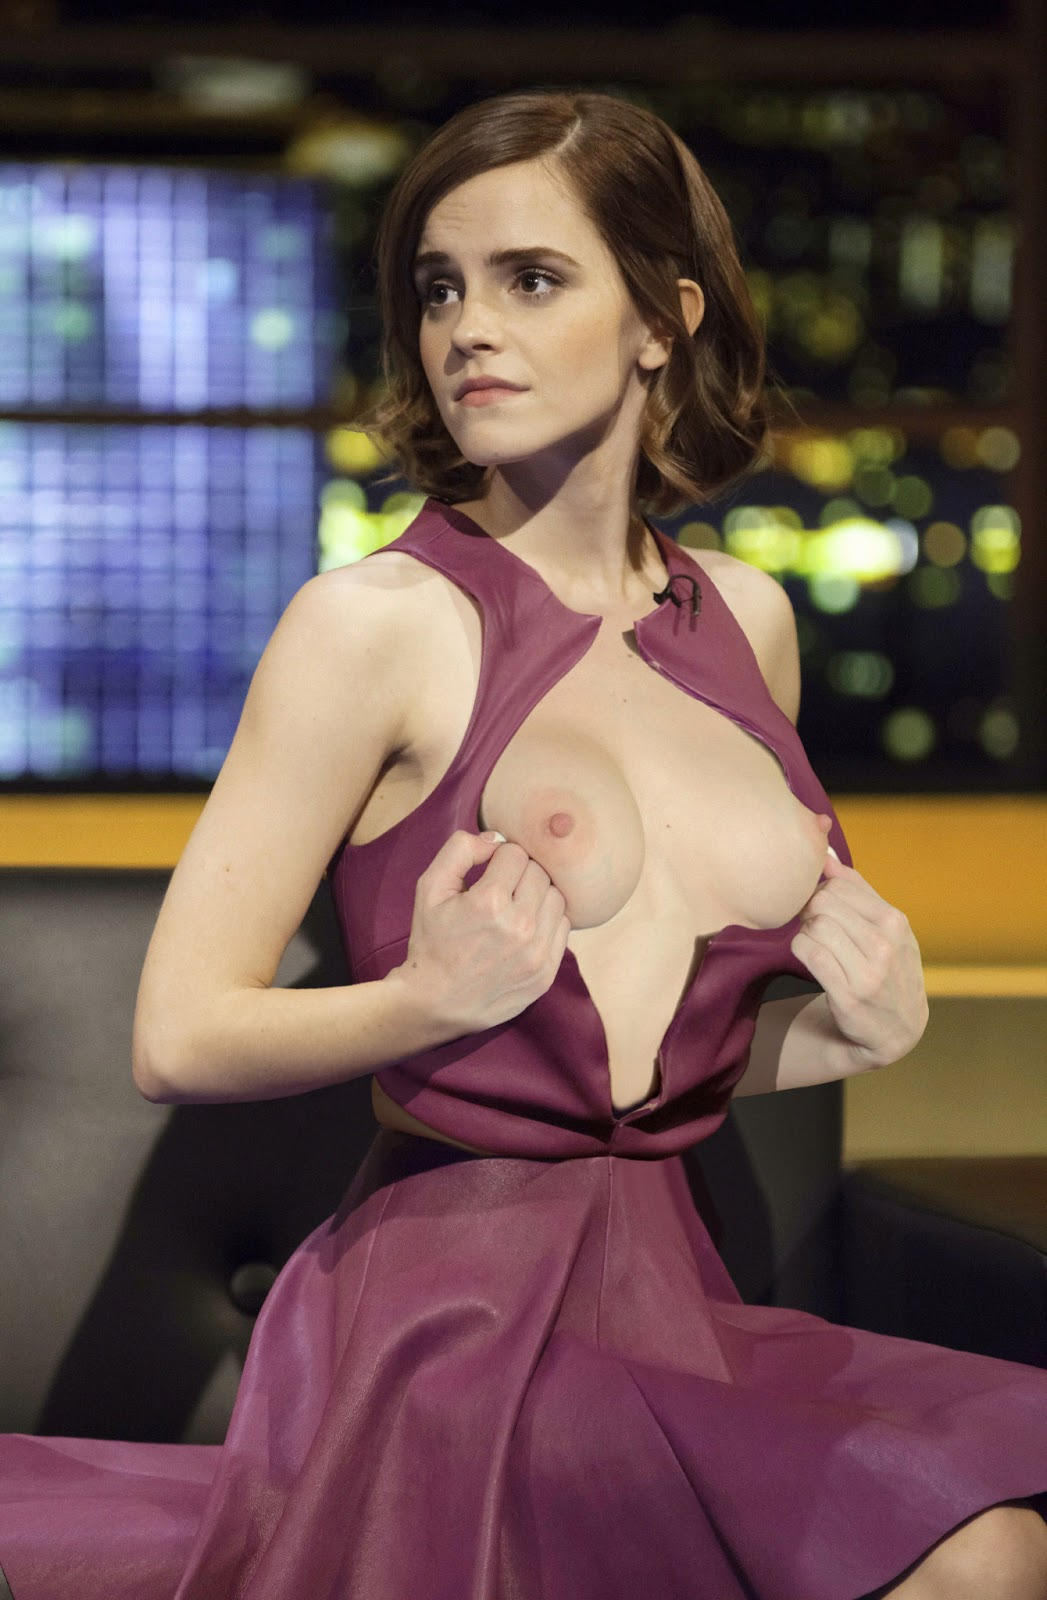 Emma Watson Nude In Tv Show Showing Her Boobs Pussy Fake